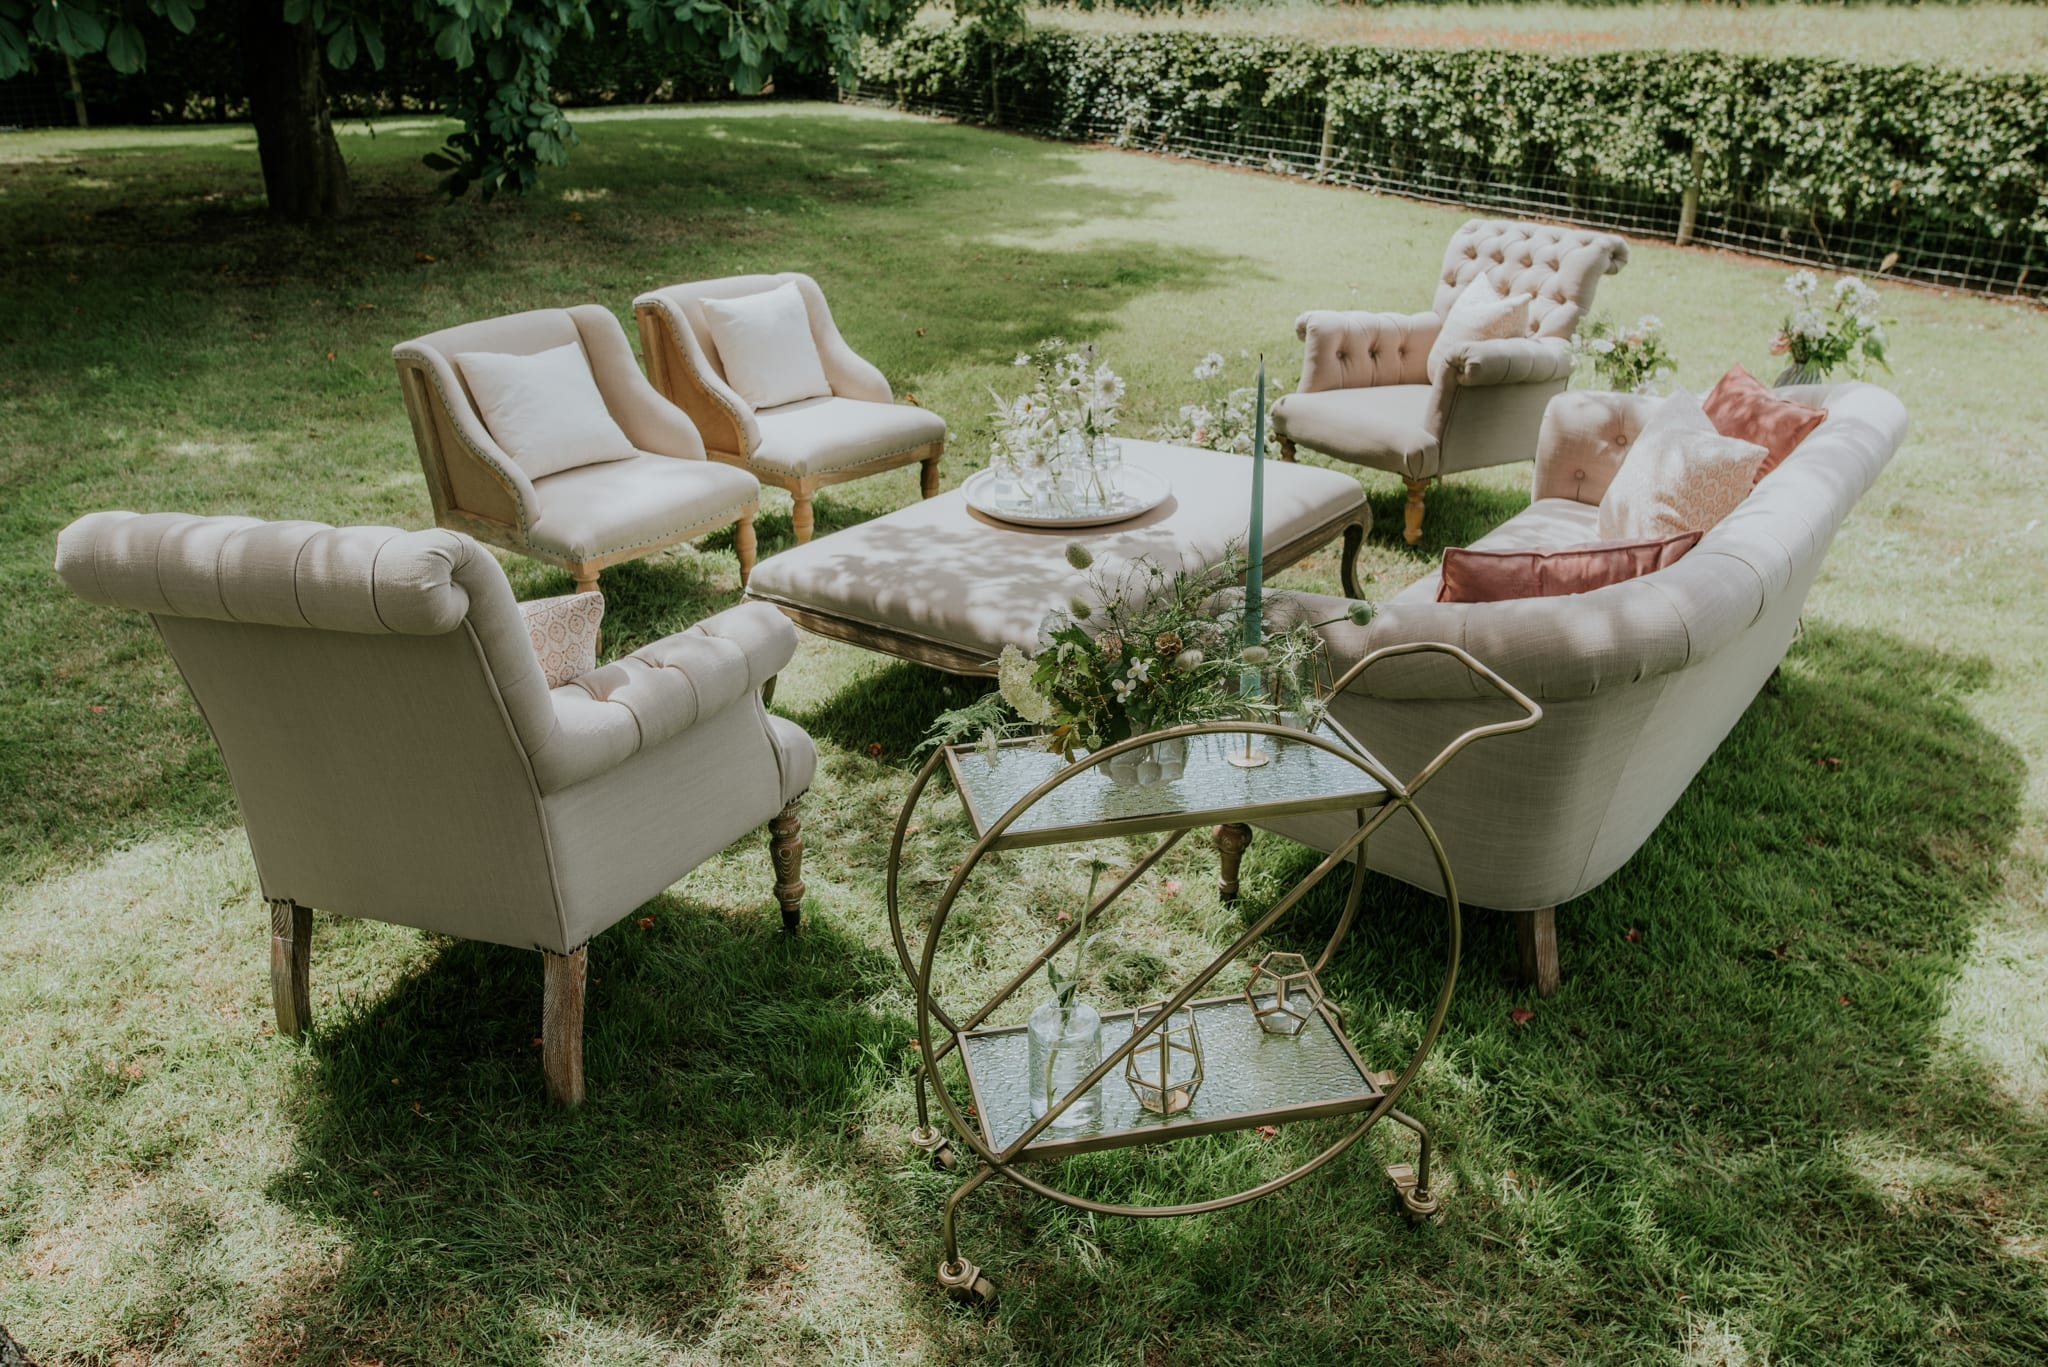 An English Country Garden wedding lounge